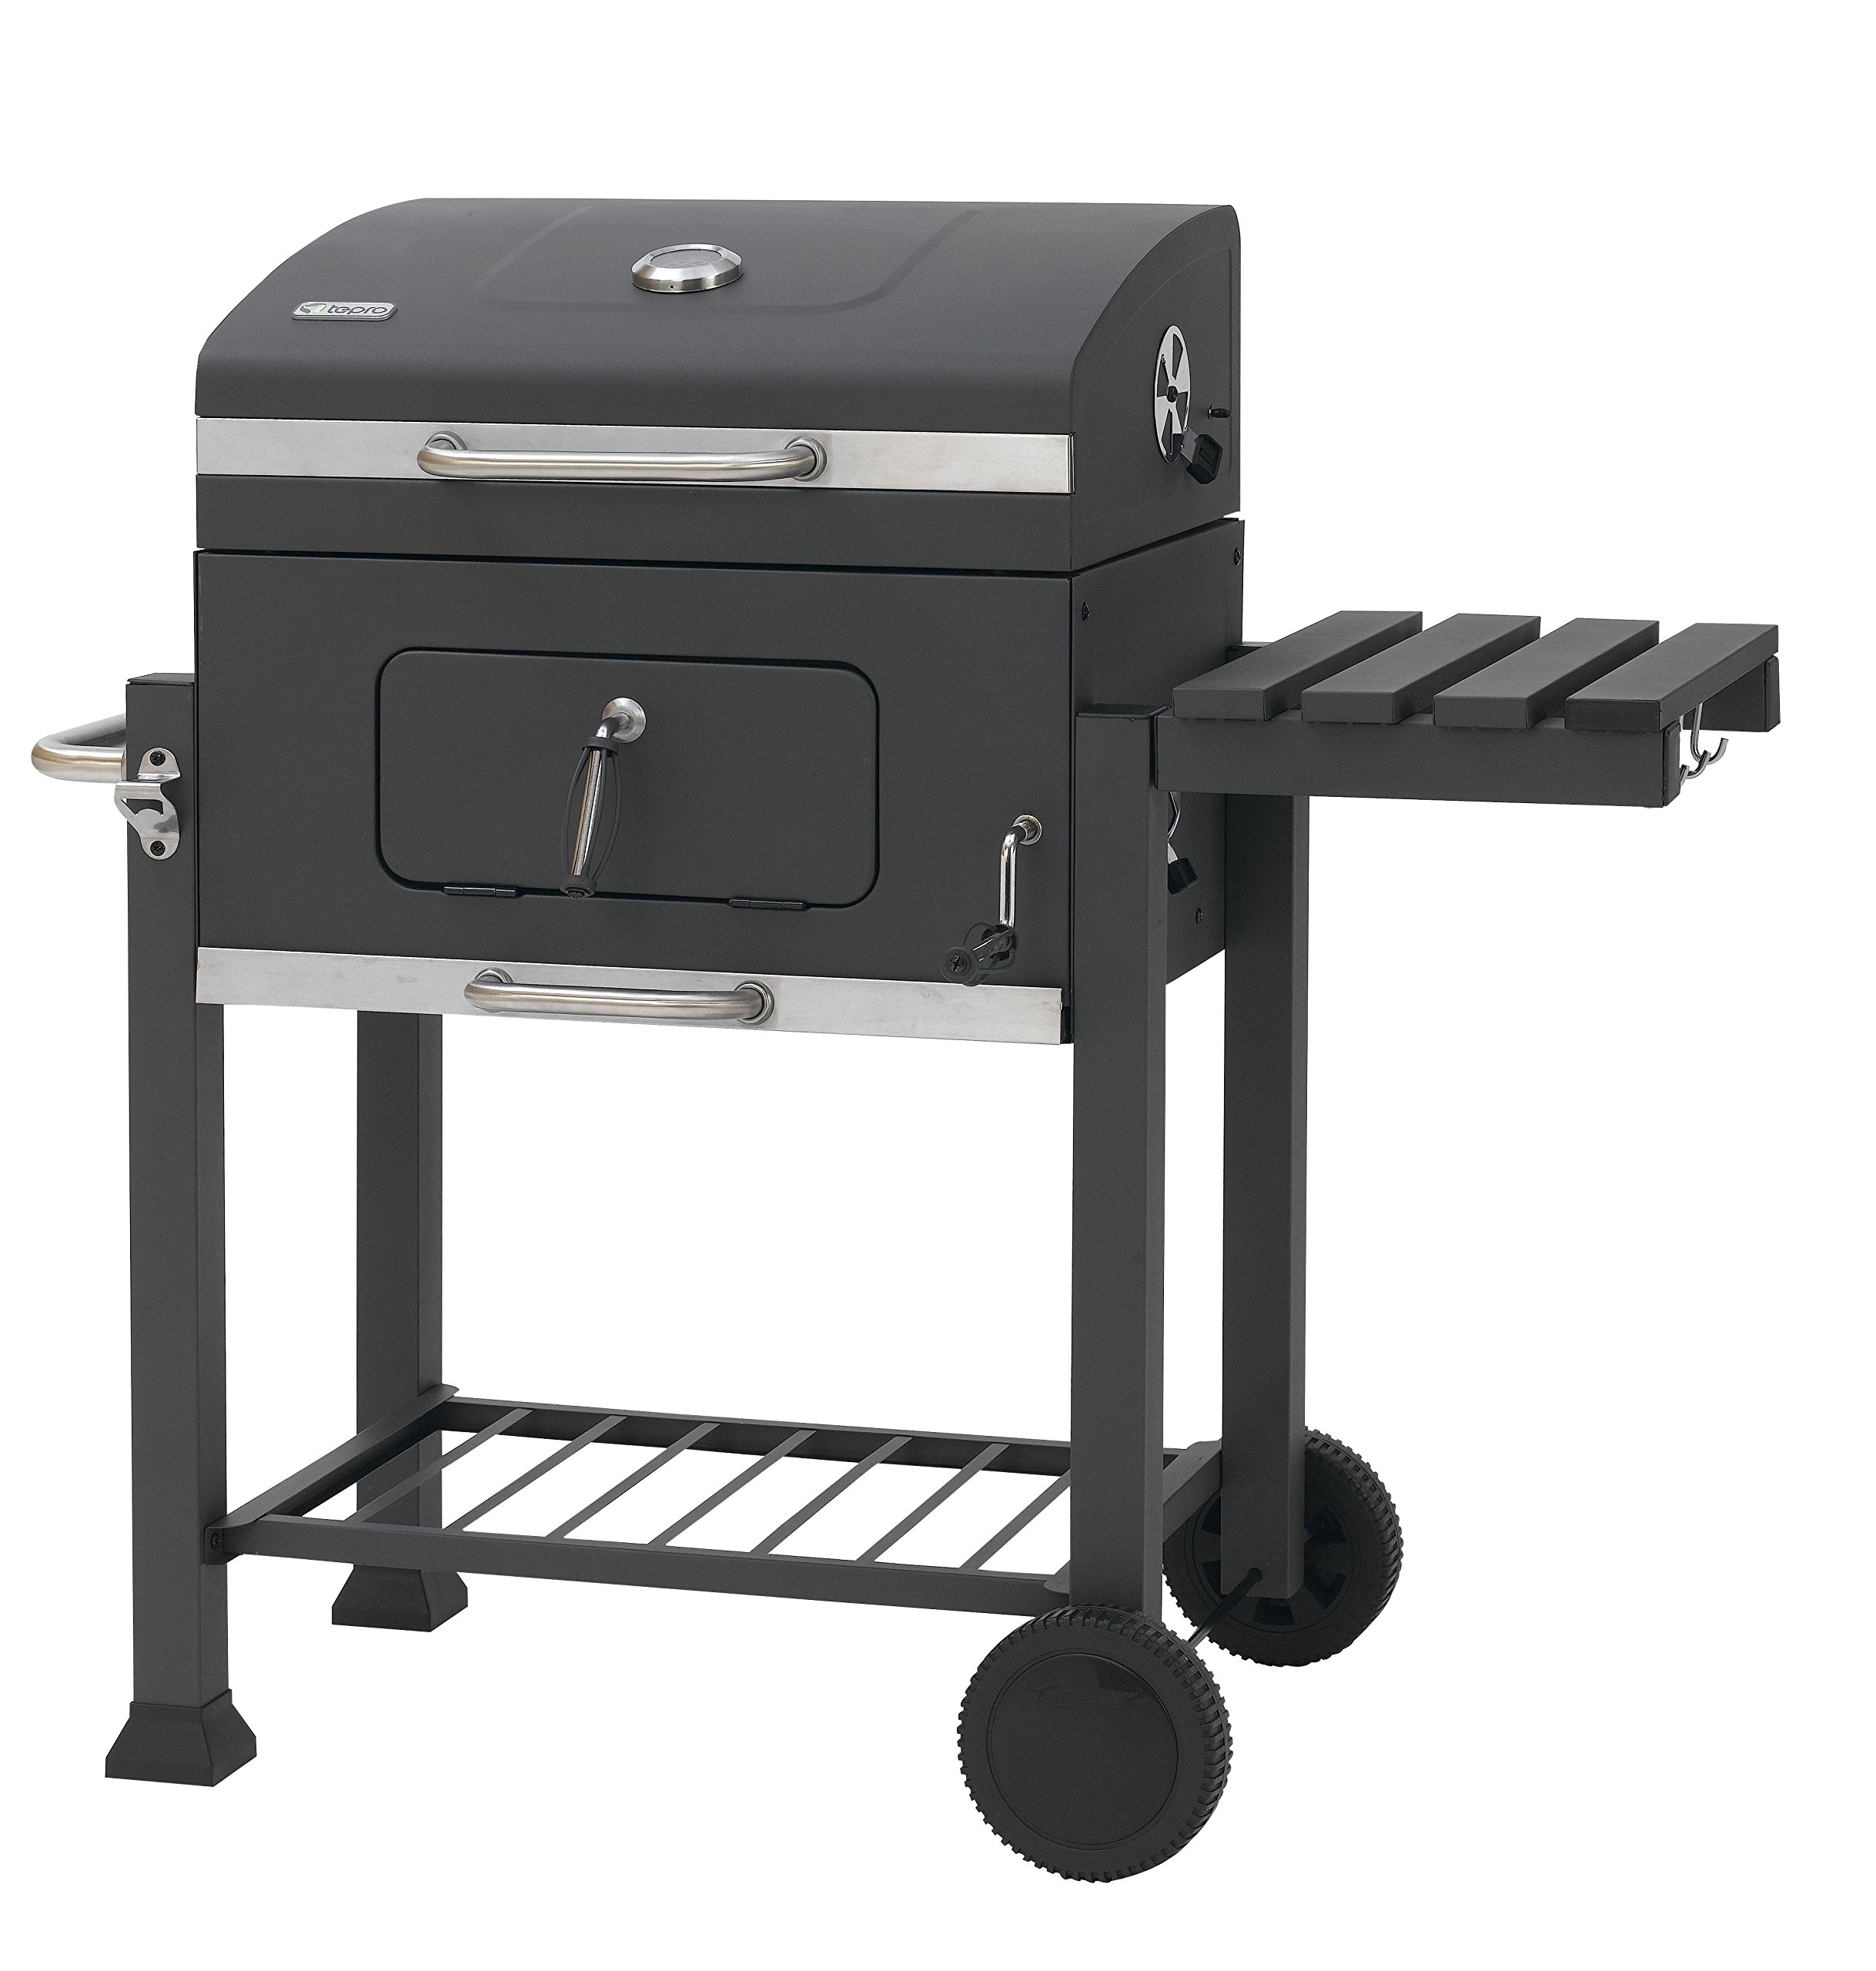 charcoal bbq garden trolley grill barbecue grilling 2 racks large outdoor patio ebay. Black Bedroom Furniture Sets. Home Design Ideas